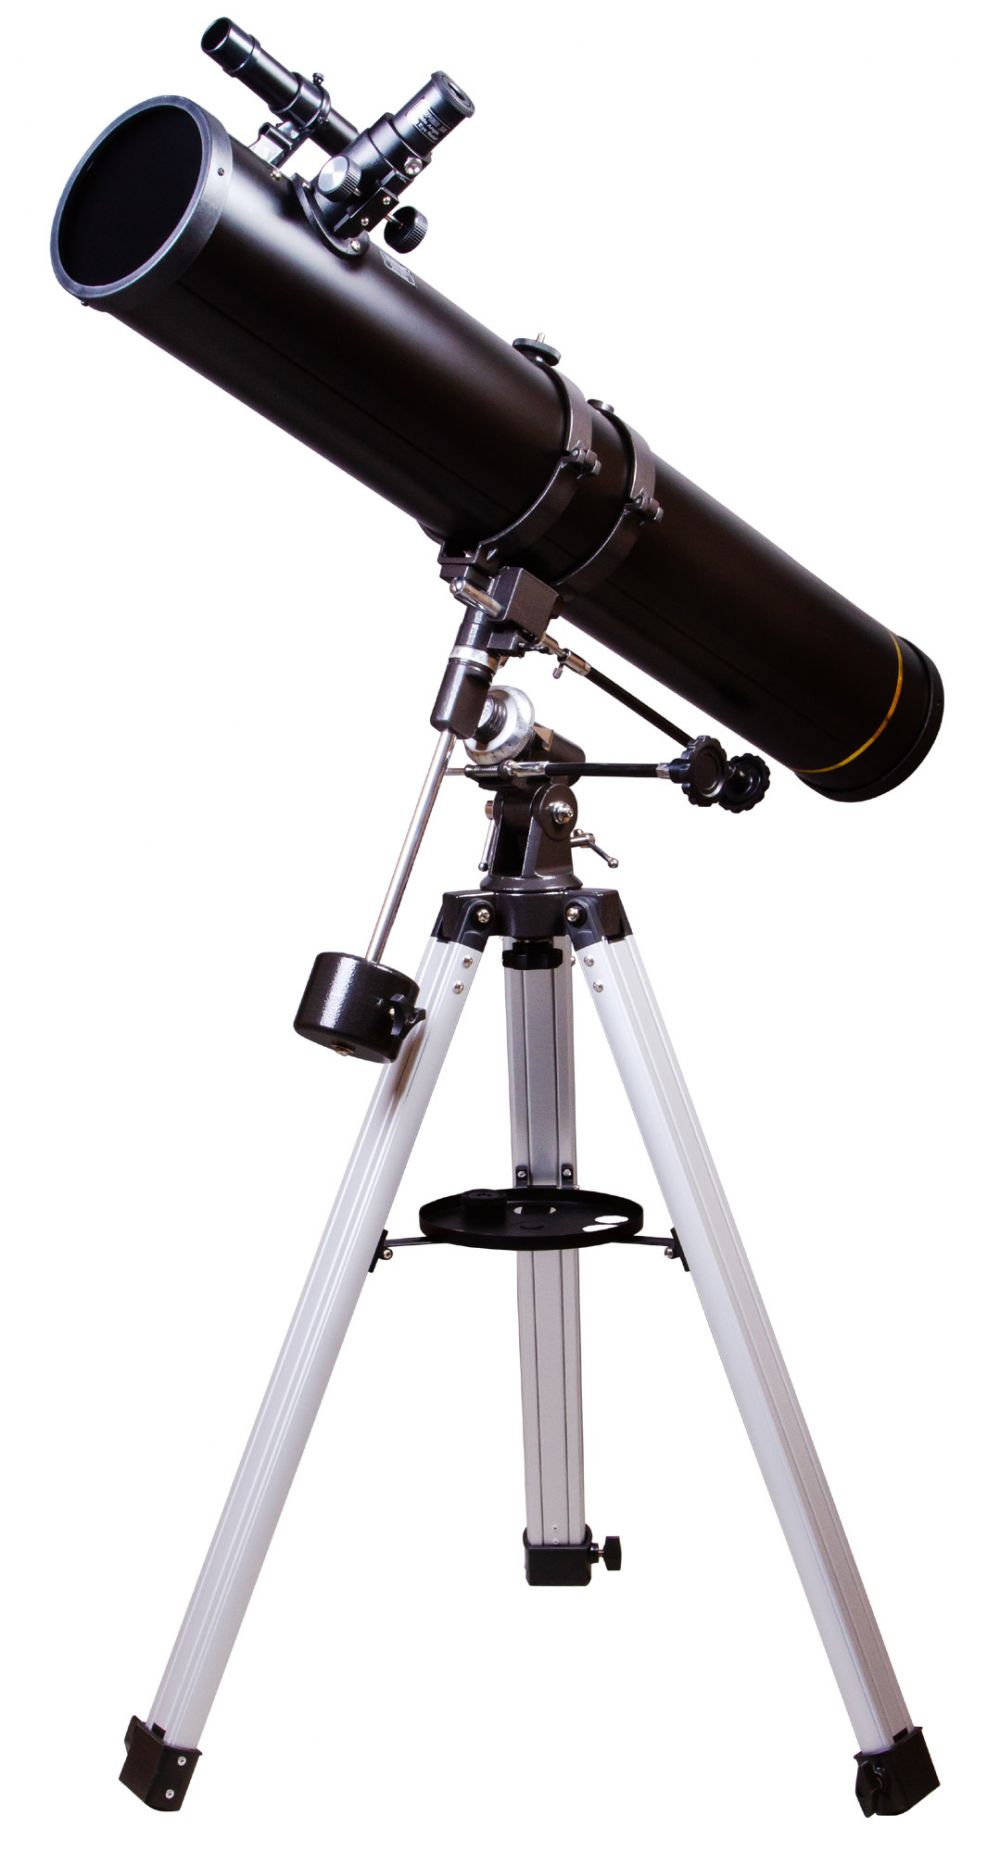 Levenhuk 120S 114/900 EQ Skyline Base Plus Telescopio Astronomico